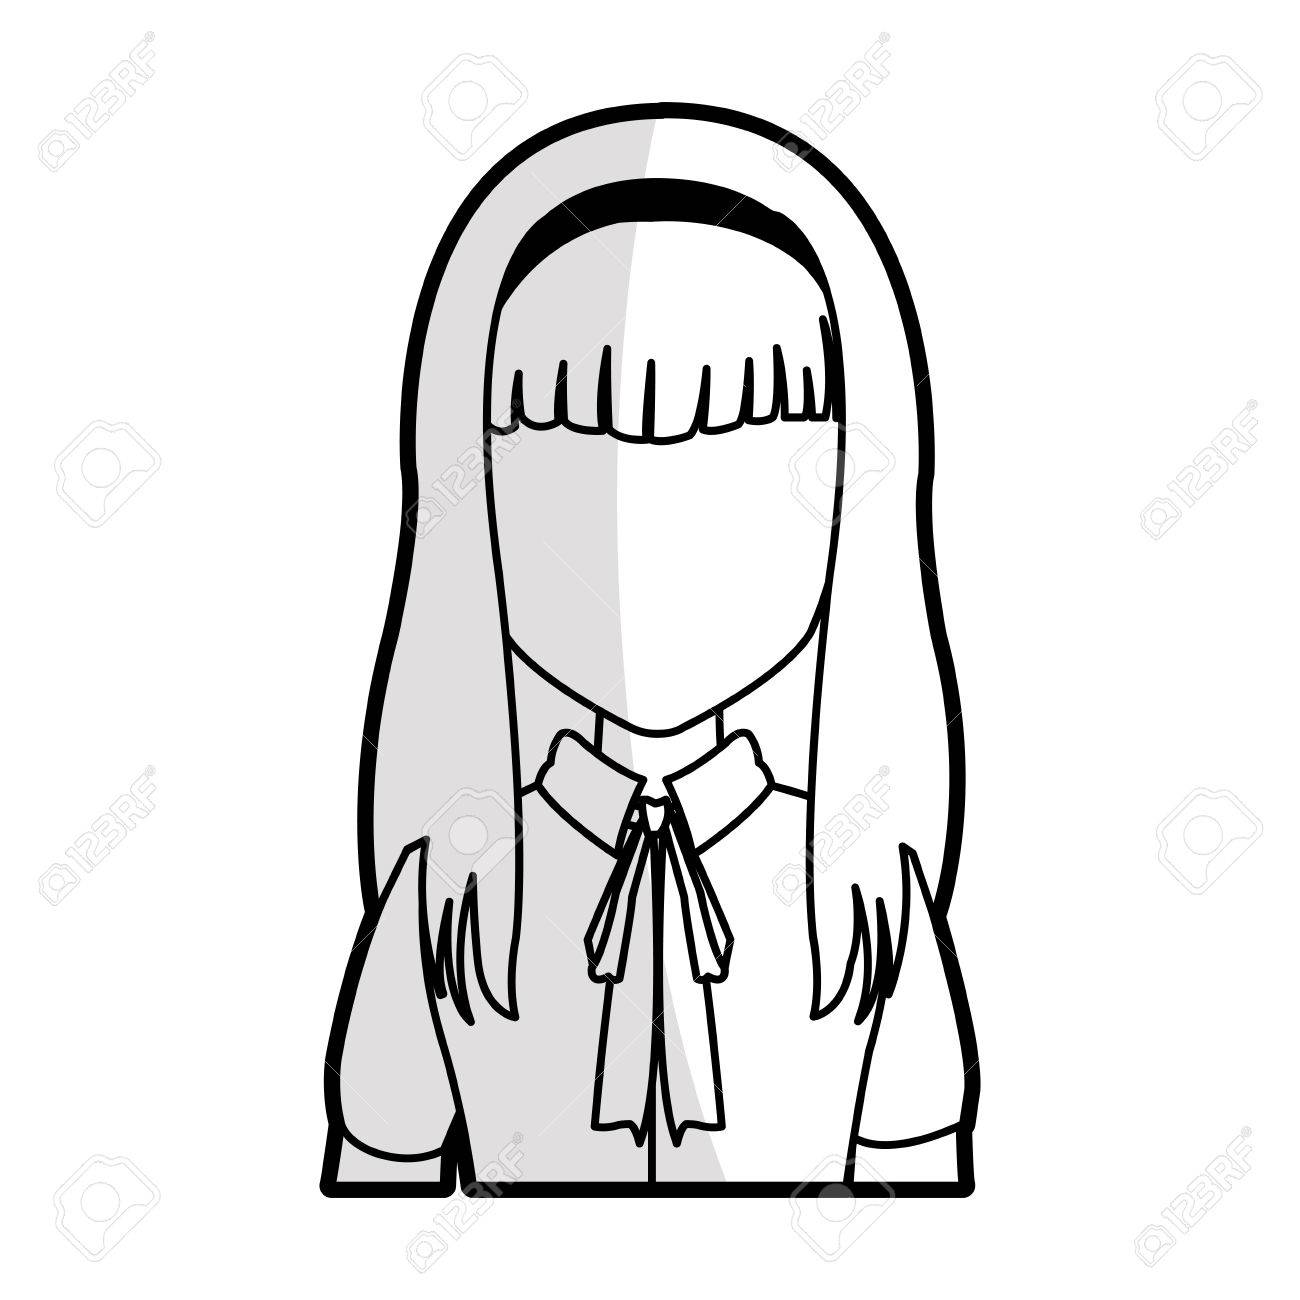 Straight Hair Clipart Black And White.